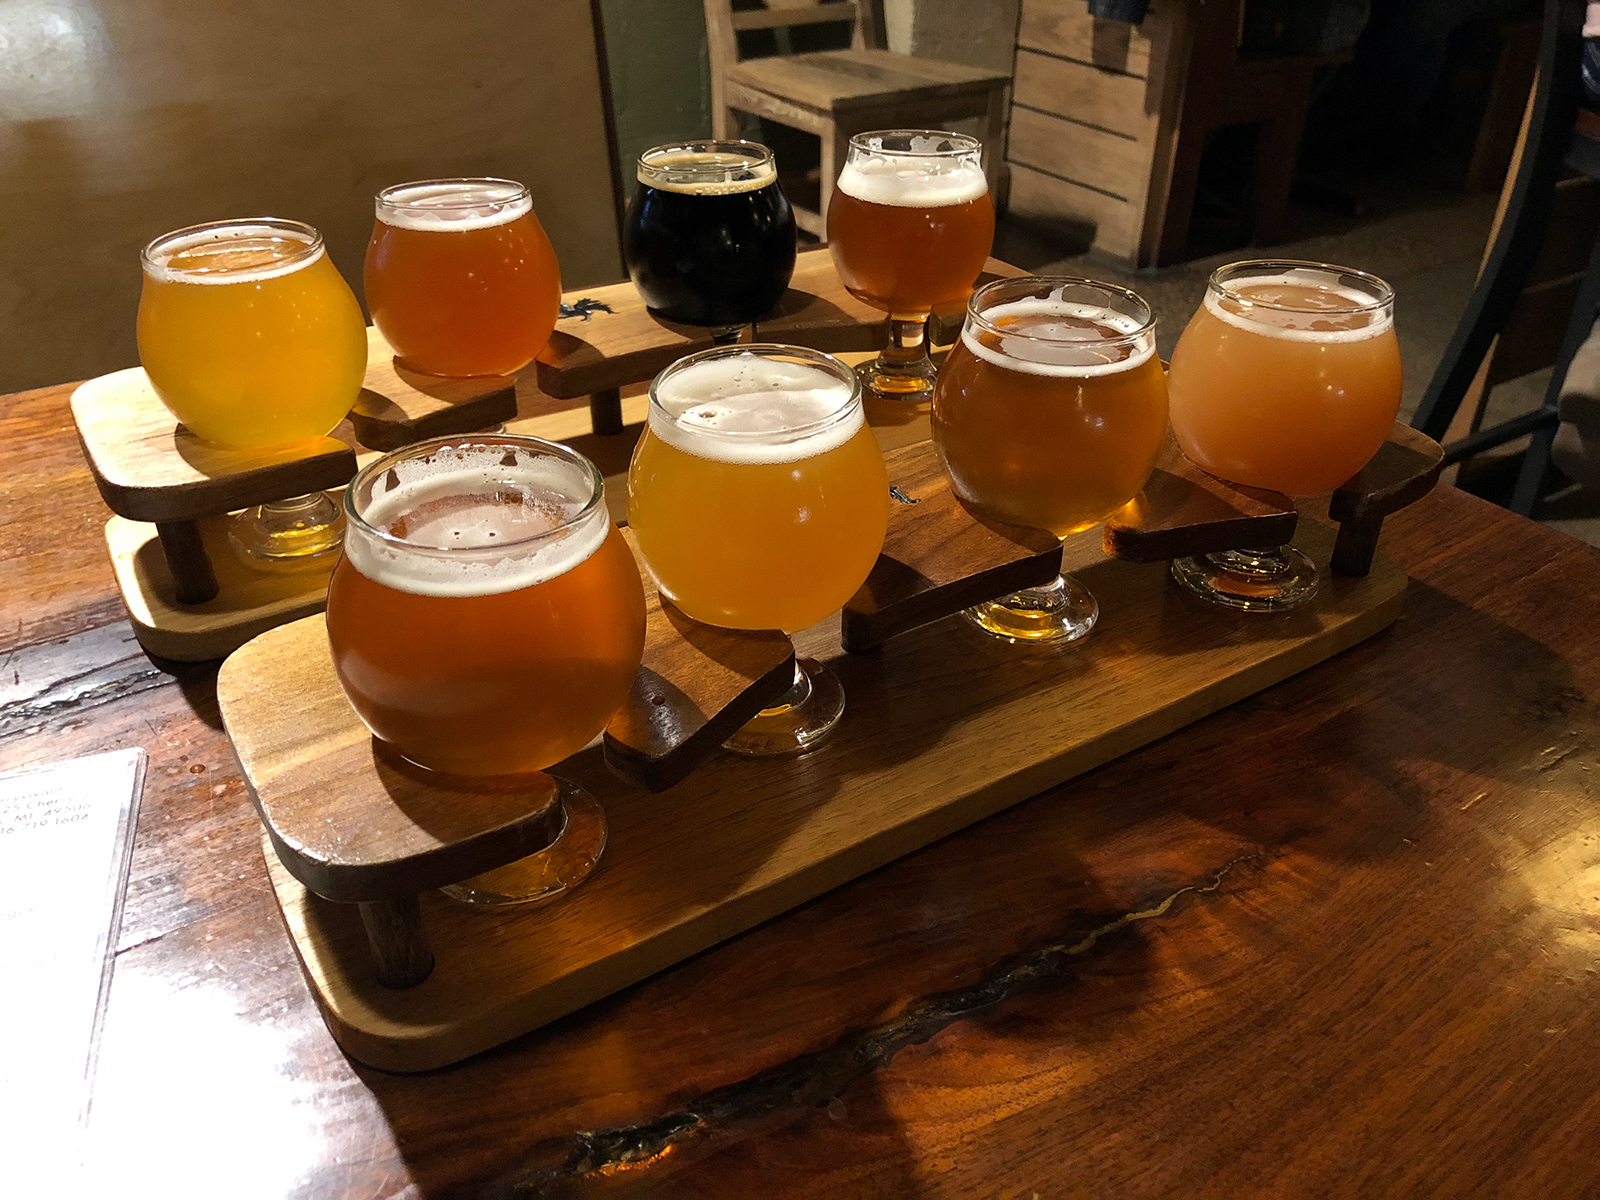 Brewery Vivant in Grand Rapids, MI by Jets Like Taxis / Hopsmash